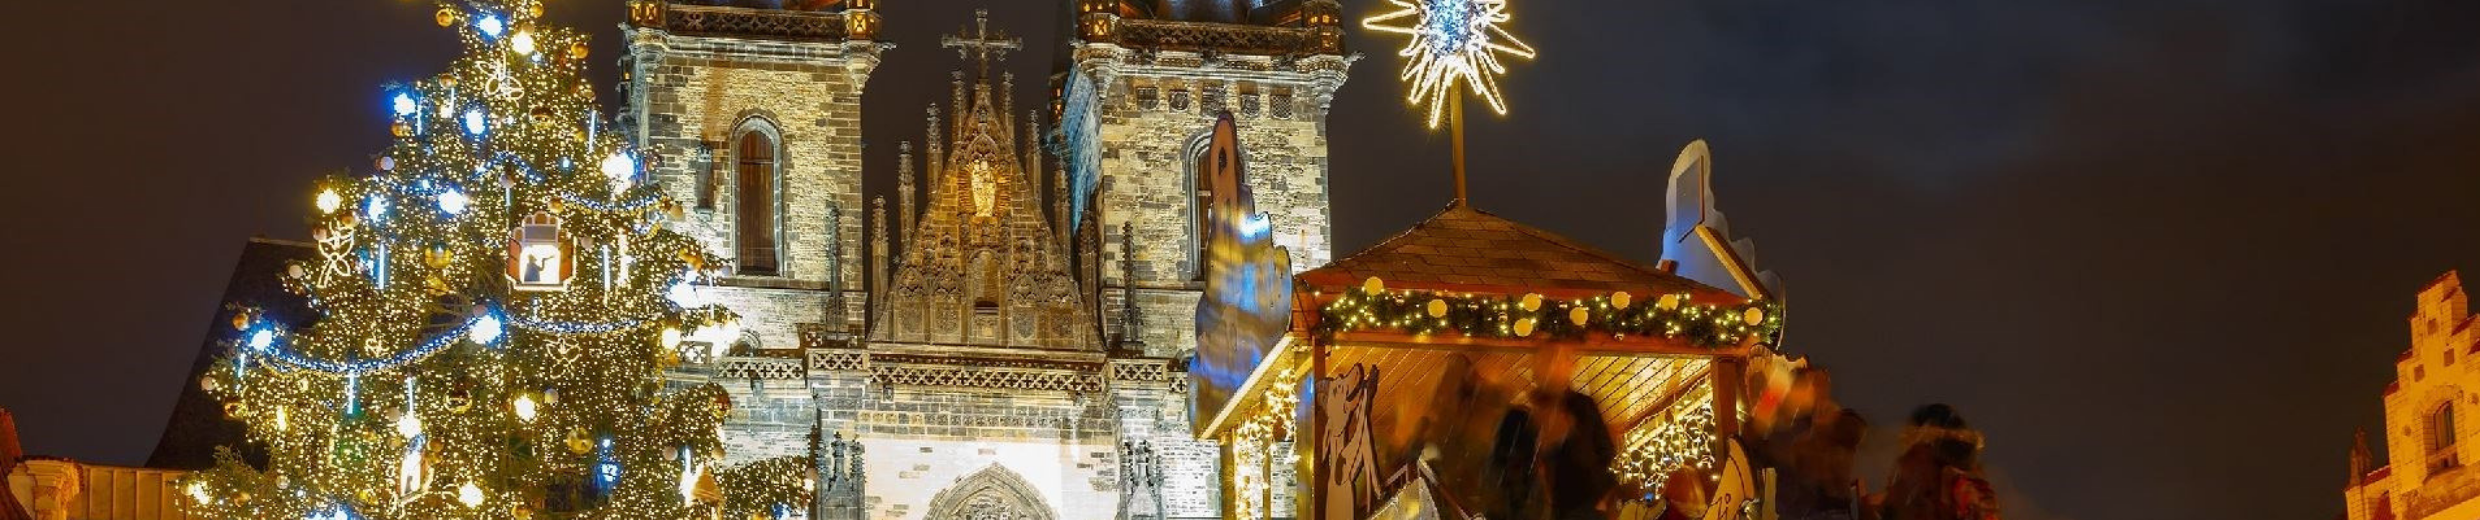 Plan A Vacation EXCLUSIVE Rates!  Magical Christmas Markets AmaWaterways